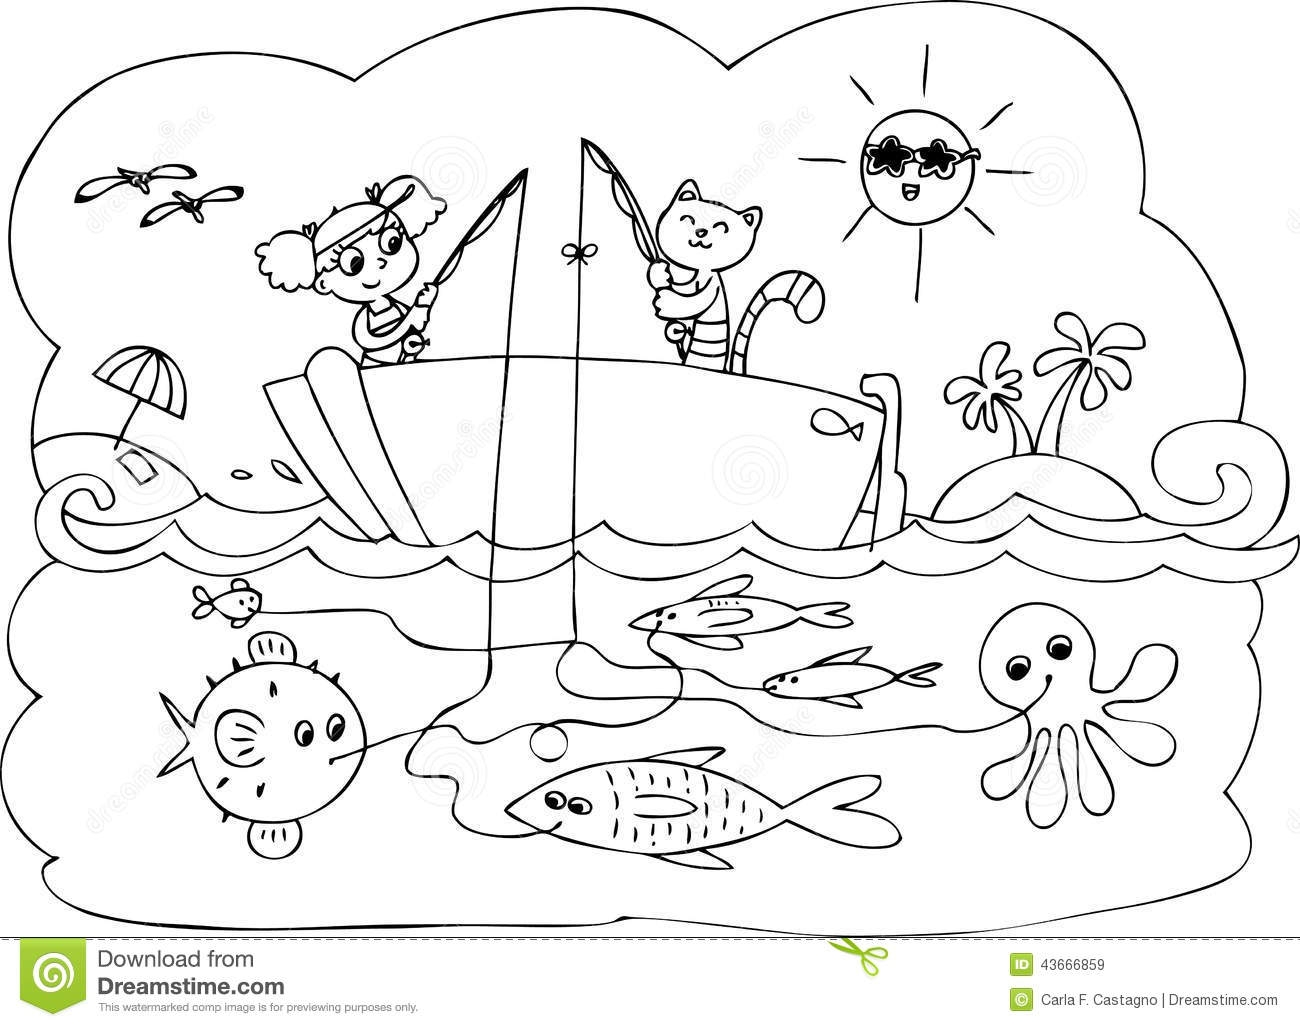 sea creatures coloring pages - stock illustration fish boat game coloring maze little children fishing image